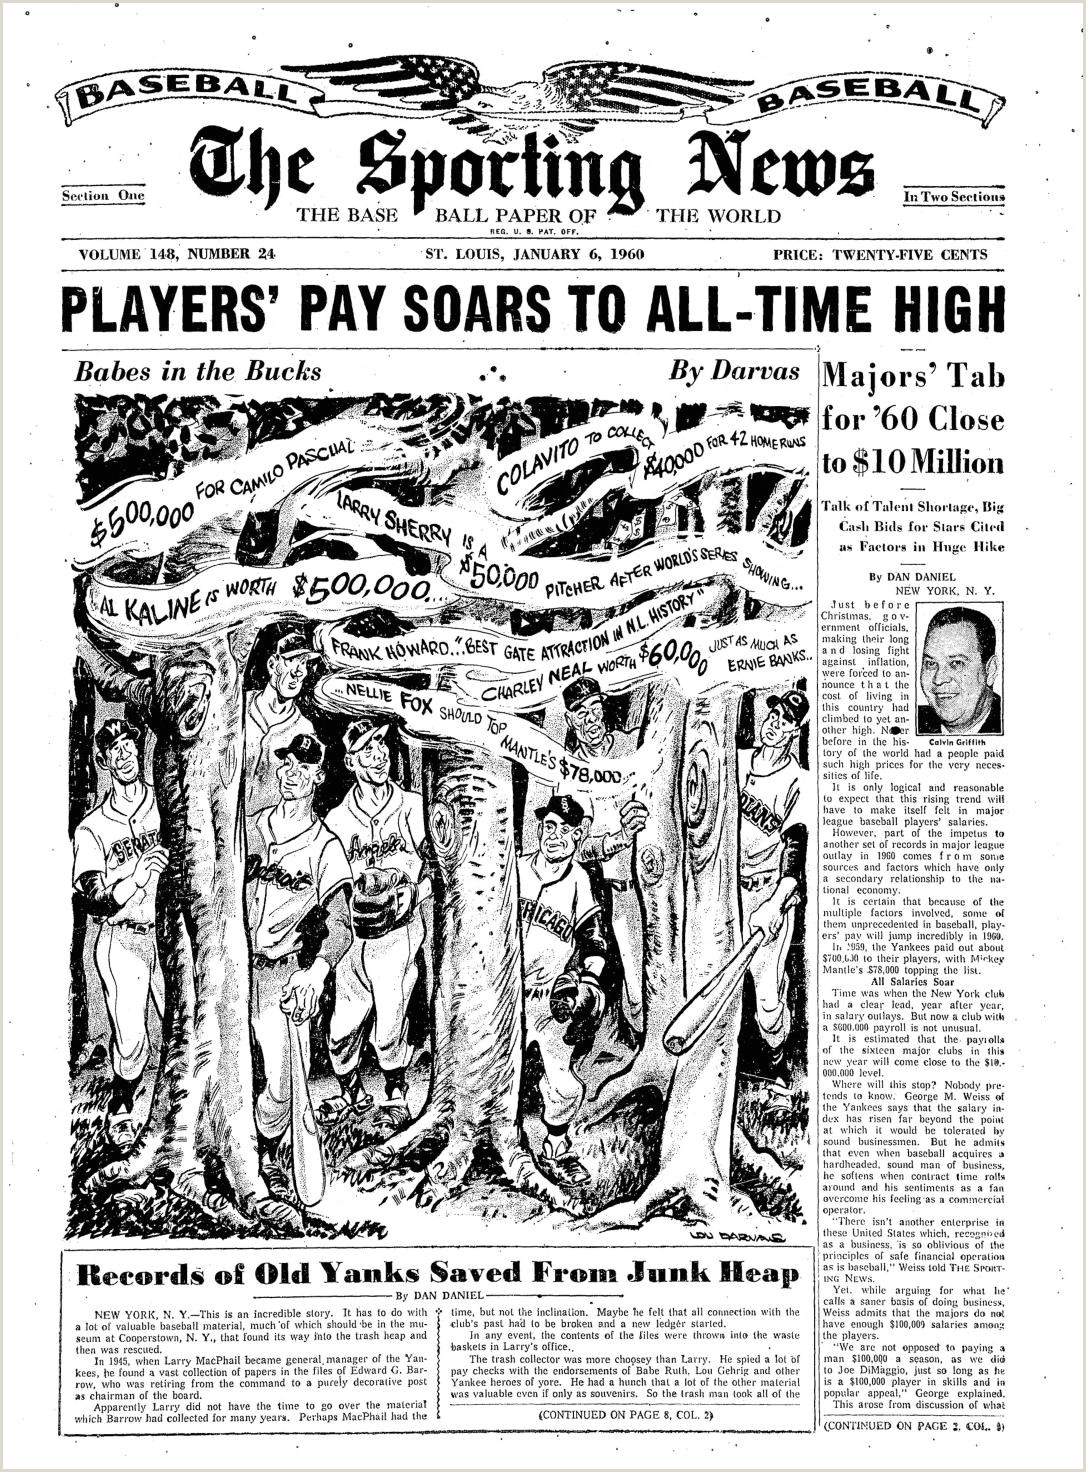 Business Crds The Sporting News 01 06 1960 By Mexico Sports Collectibles